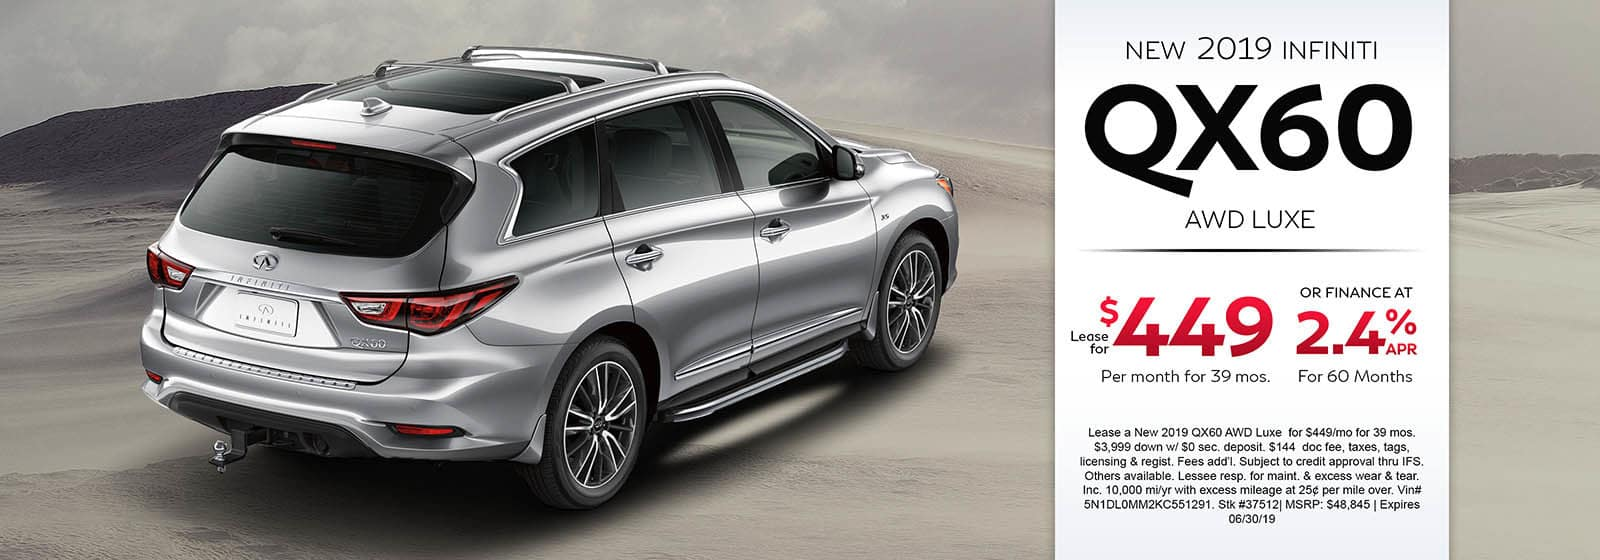 2019 INFINIT QX60 AWD LUXE Lease For $449